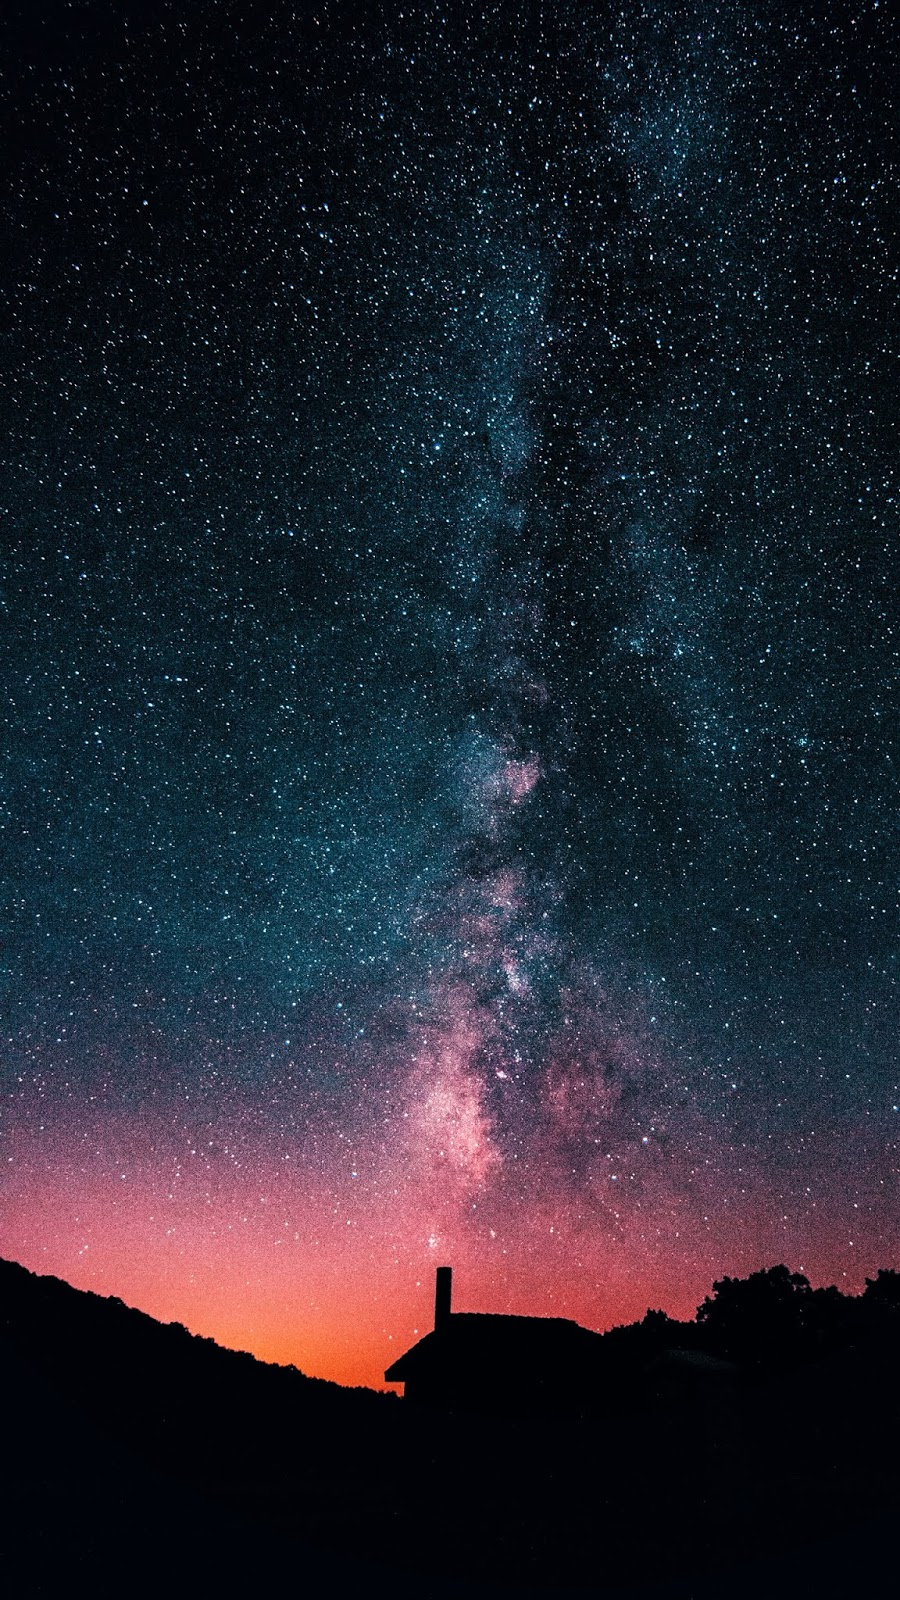 Red milky way of the night